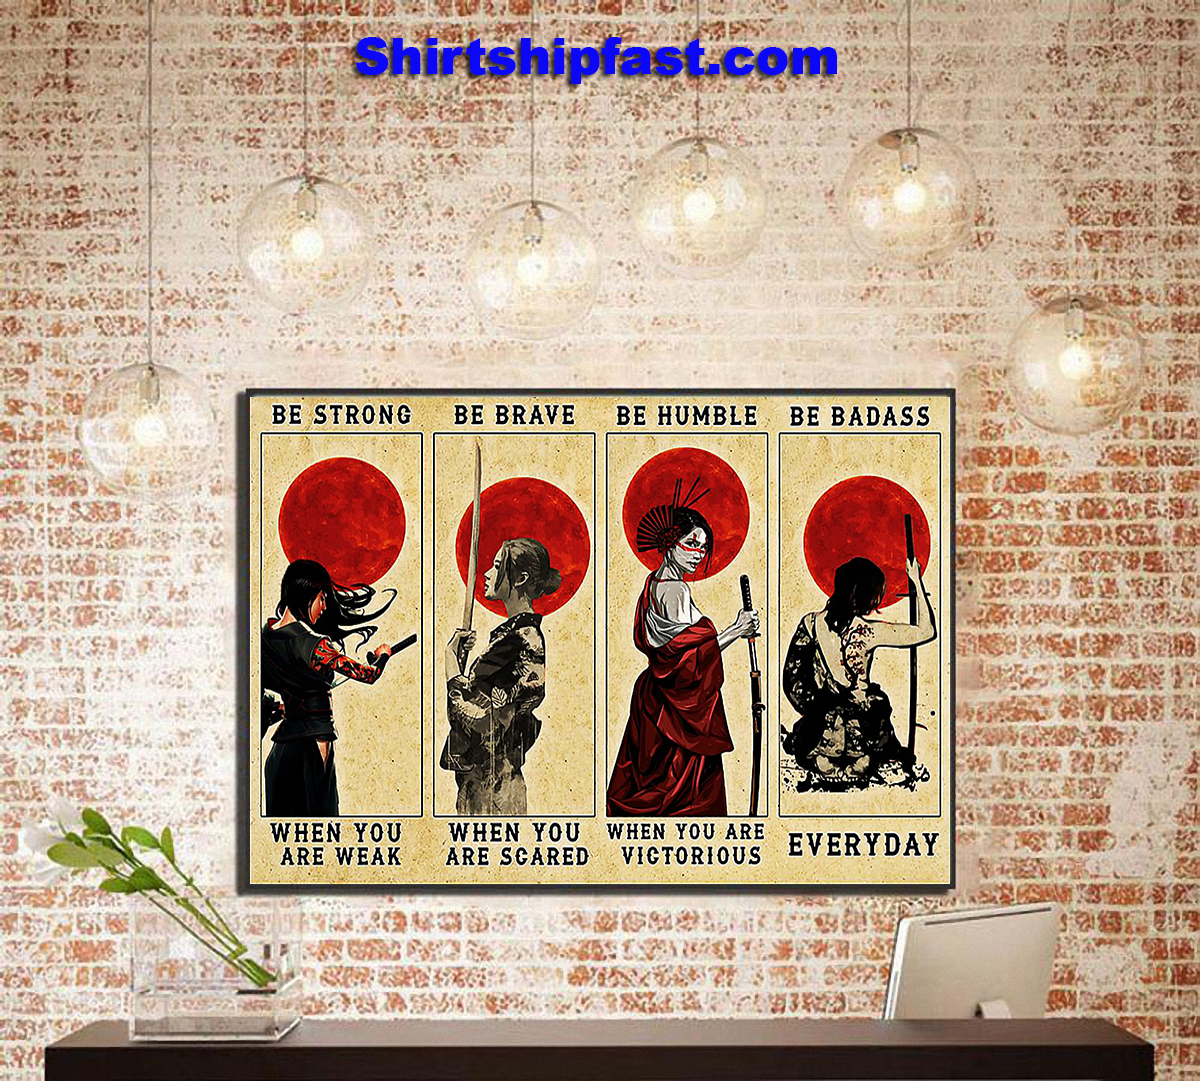 Customizable Samurai women be strong be brave be humble be badass canvas - Picture 2